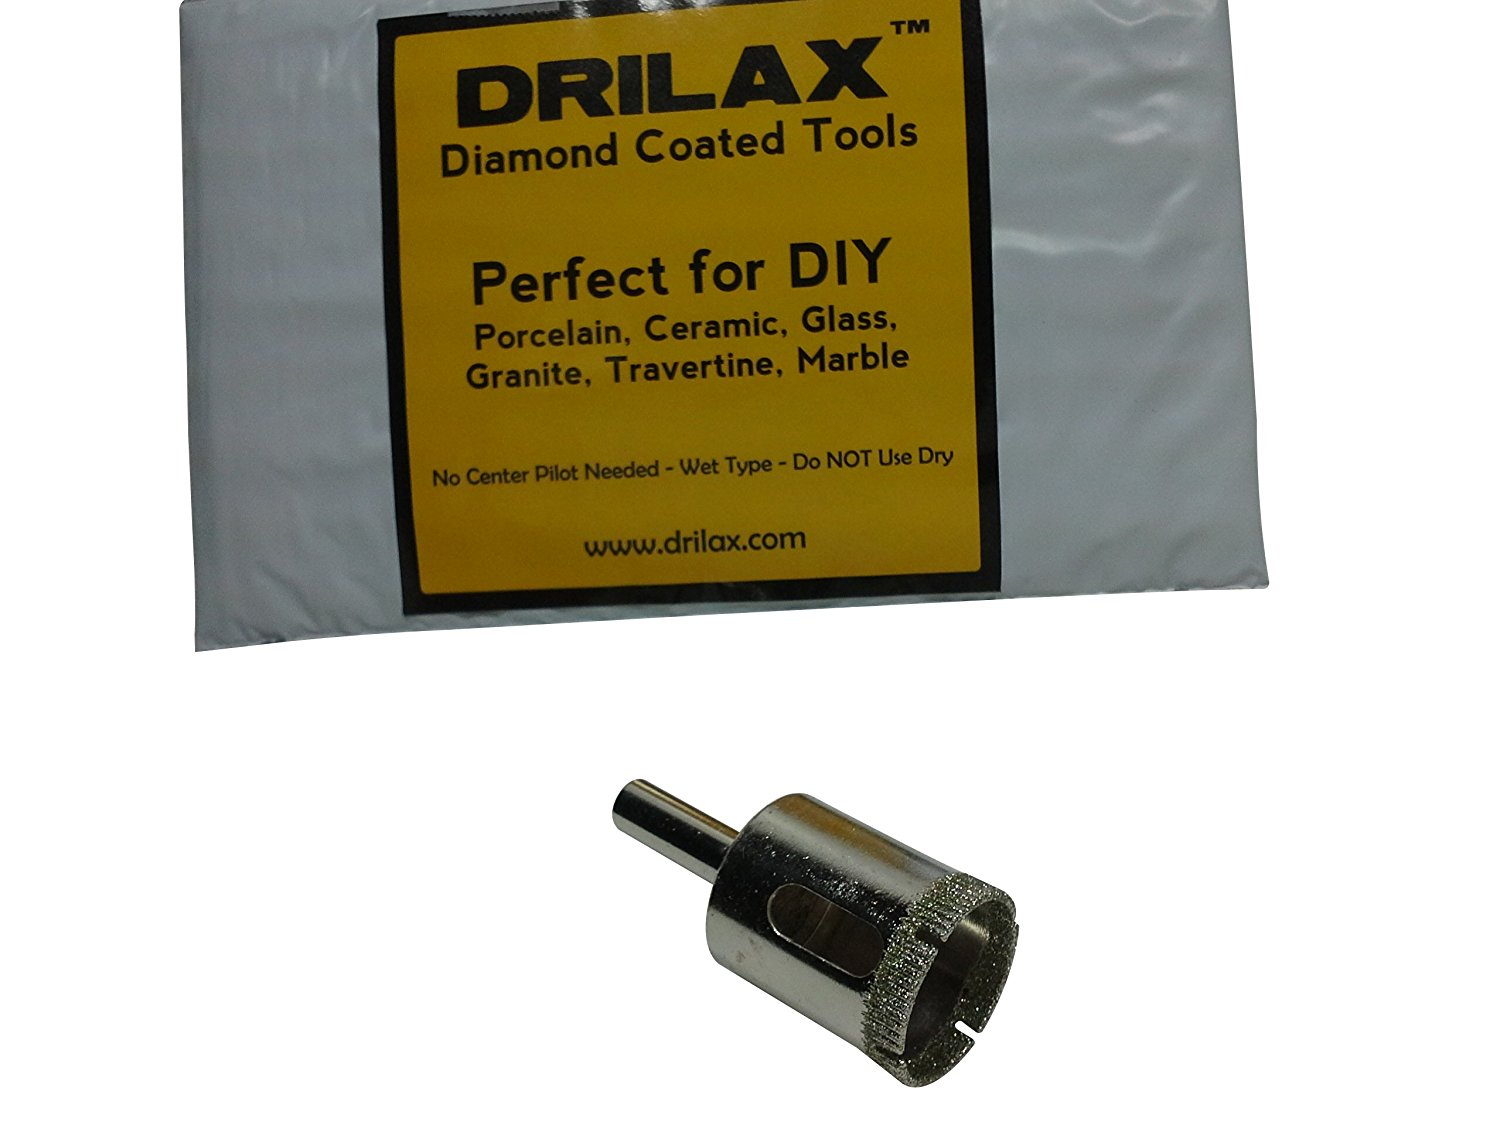 """Drilax 1 Inch Diamond Hole Saw Drill Bit Tiles, Glass, Fish Tanks, Marble, Granite Countertop, Ceramic, Porcelain, Coated Core Bits Holesaw DIY Kitchen, Bathroom, Shower, Faucet Installation Hole Size 1"""""""